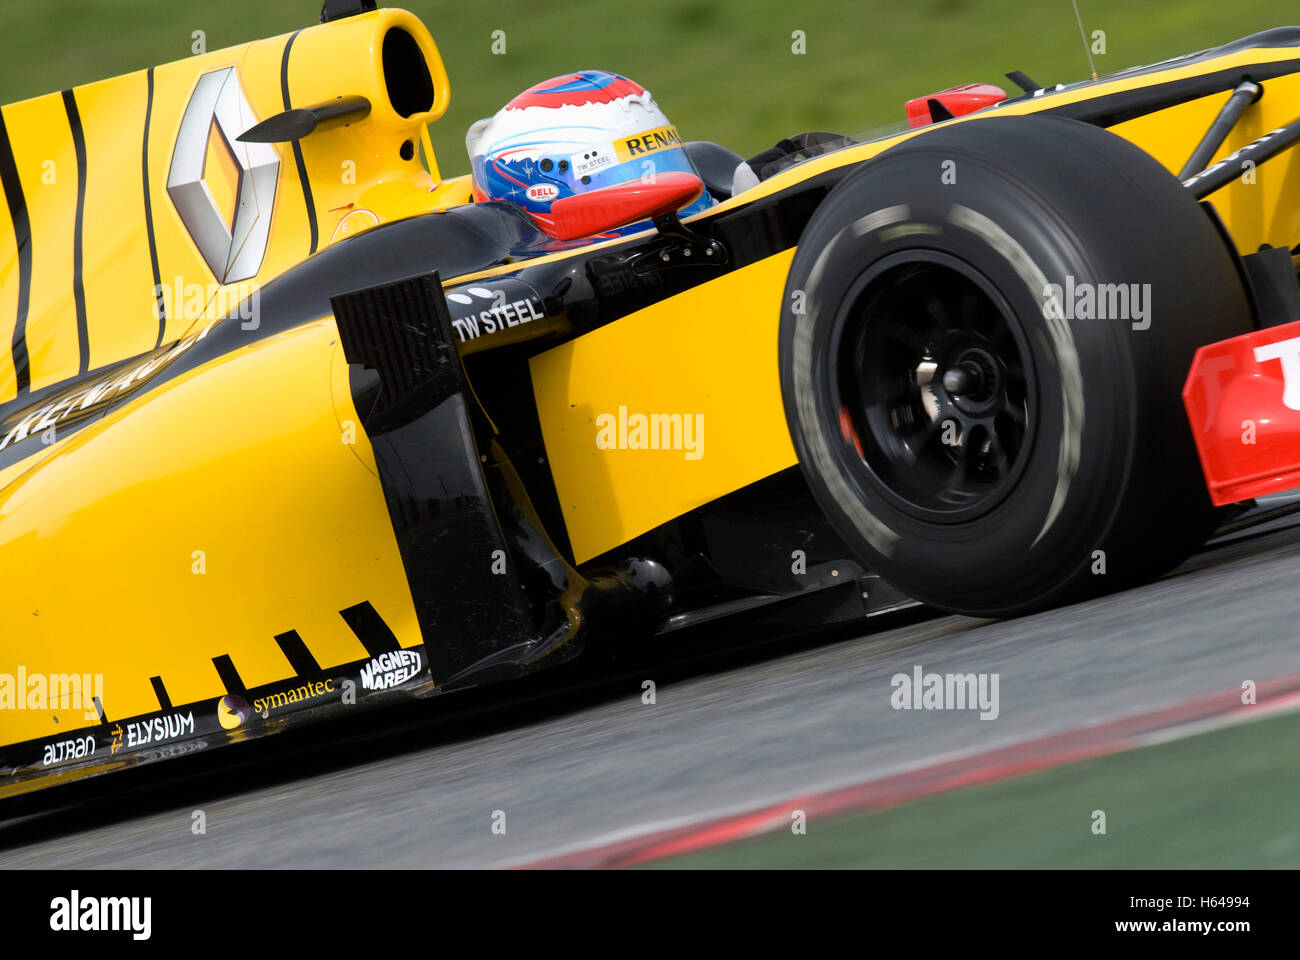 Motorsports, Vitaly Petrov, RUS, in the Renault R30 race car, Formula 1 testing at the Circuit de Catalunya race - Stock Image